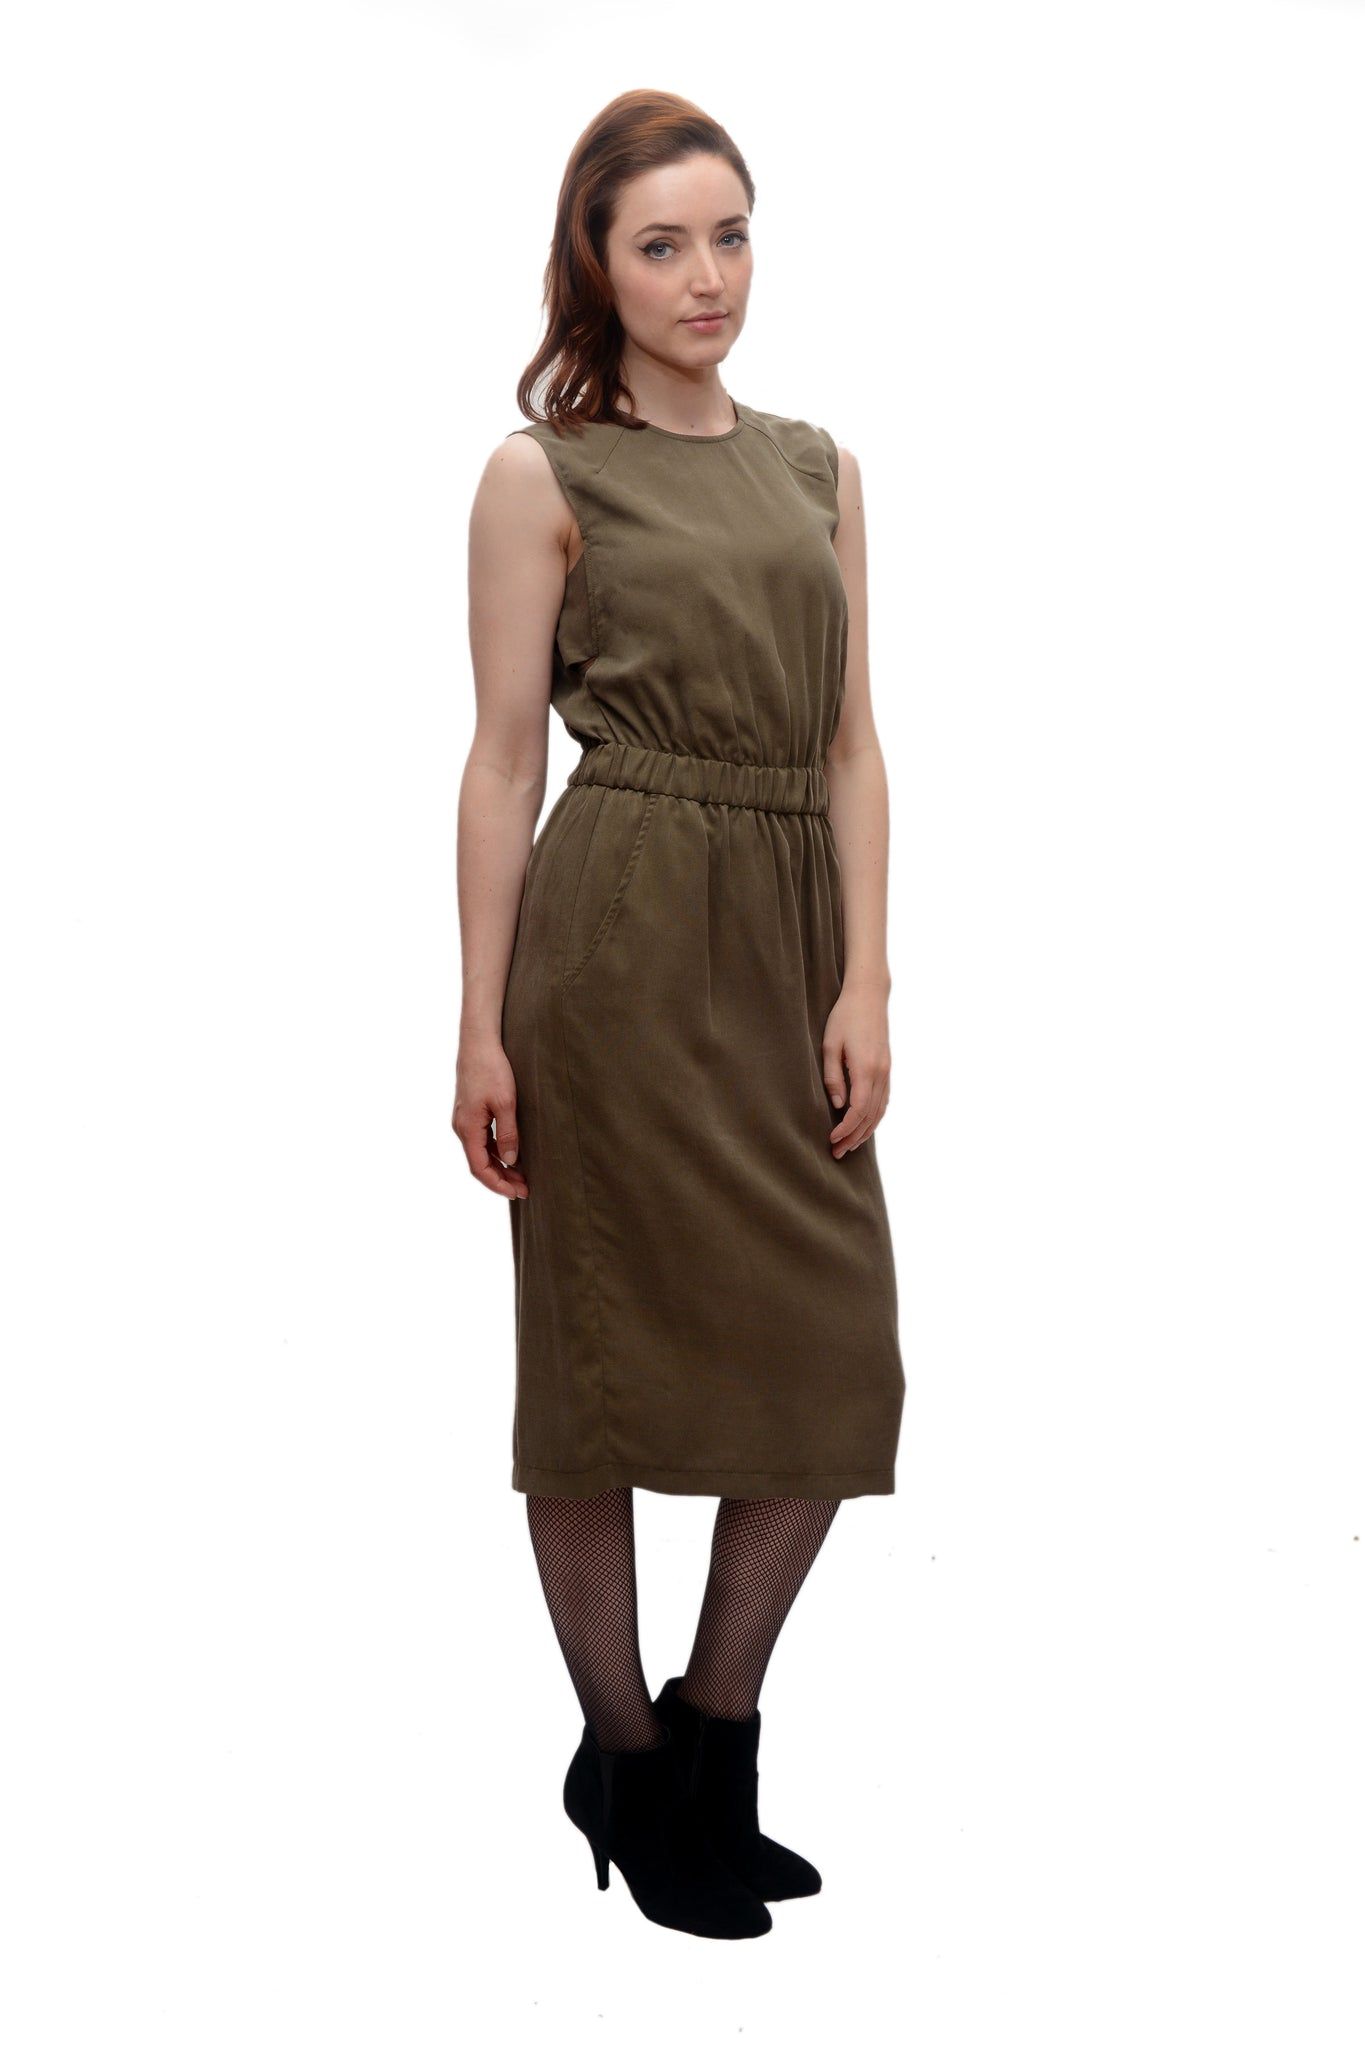 d40873c5d4 Sleeveless Jumper Dress   Taupe  Sale – naturevsfuture